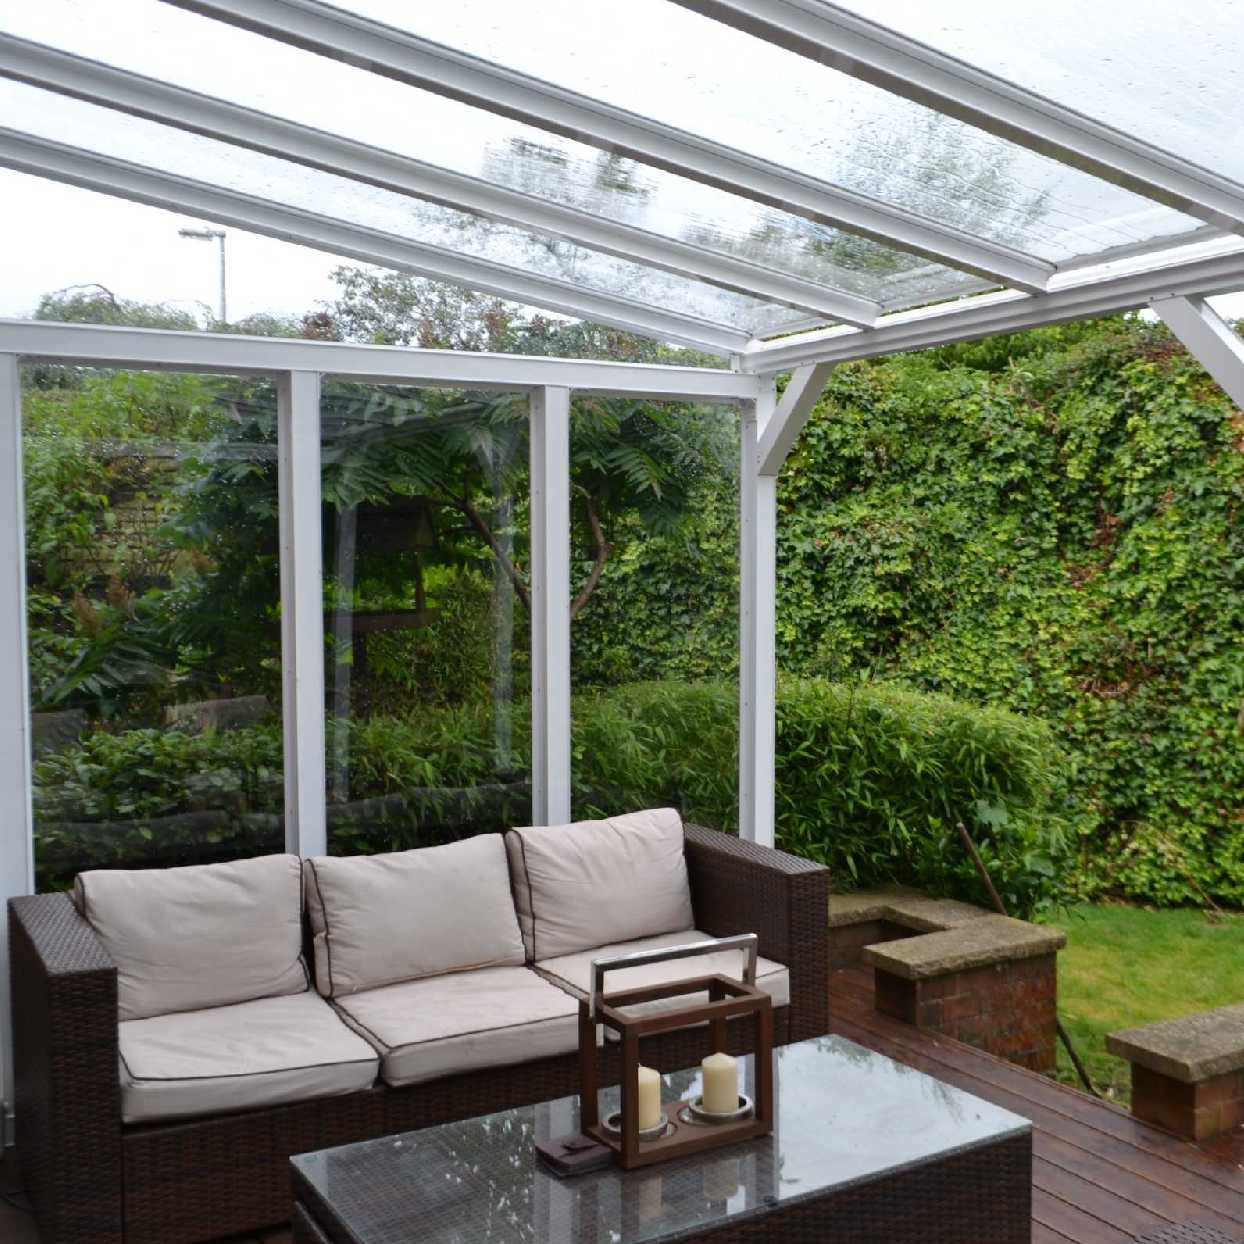 Great selection of Omega Smart Lean-To Canopy with 16mm Polycarbonate Glazing - 3.1m (W) x 3.0m (P), (2) Supporting Posts